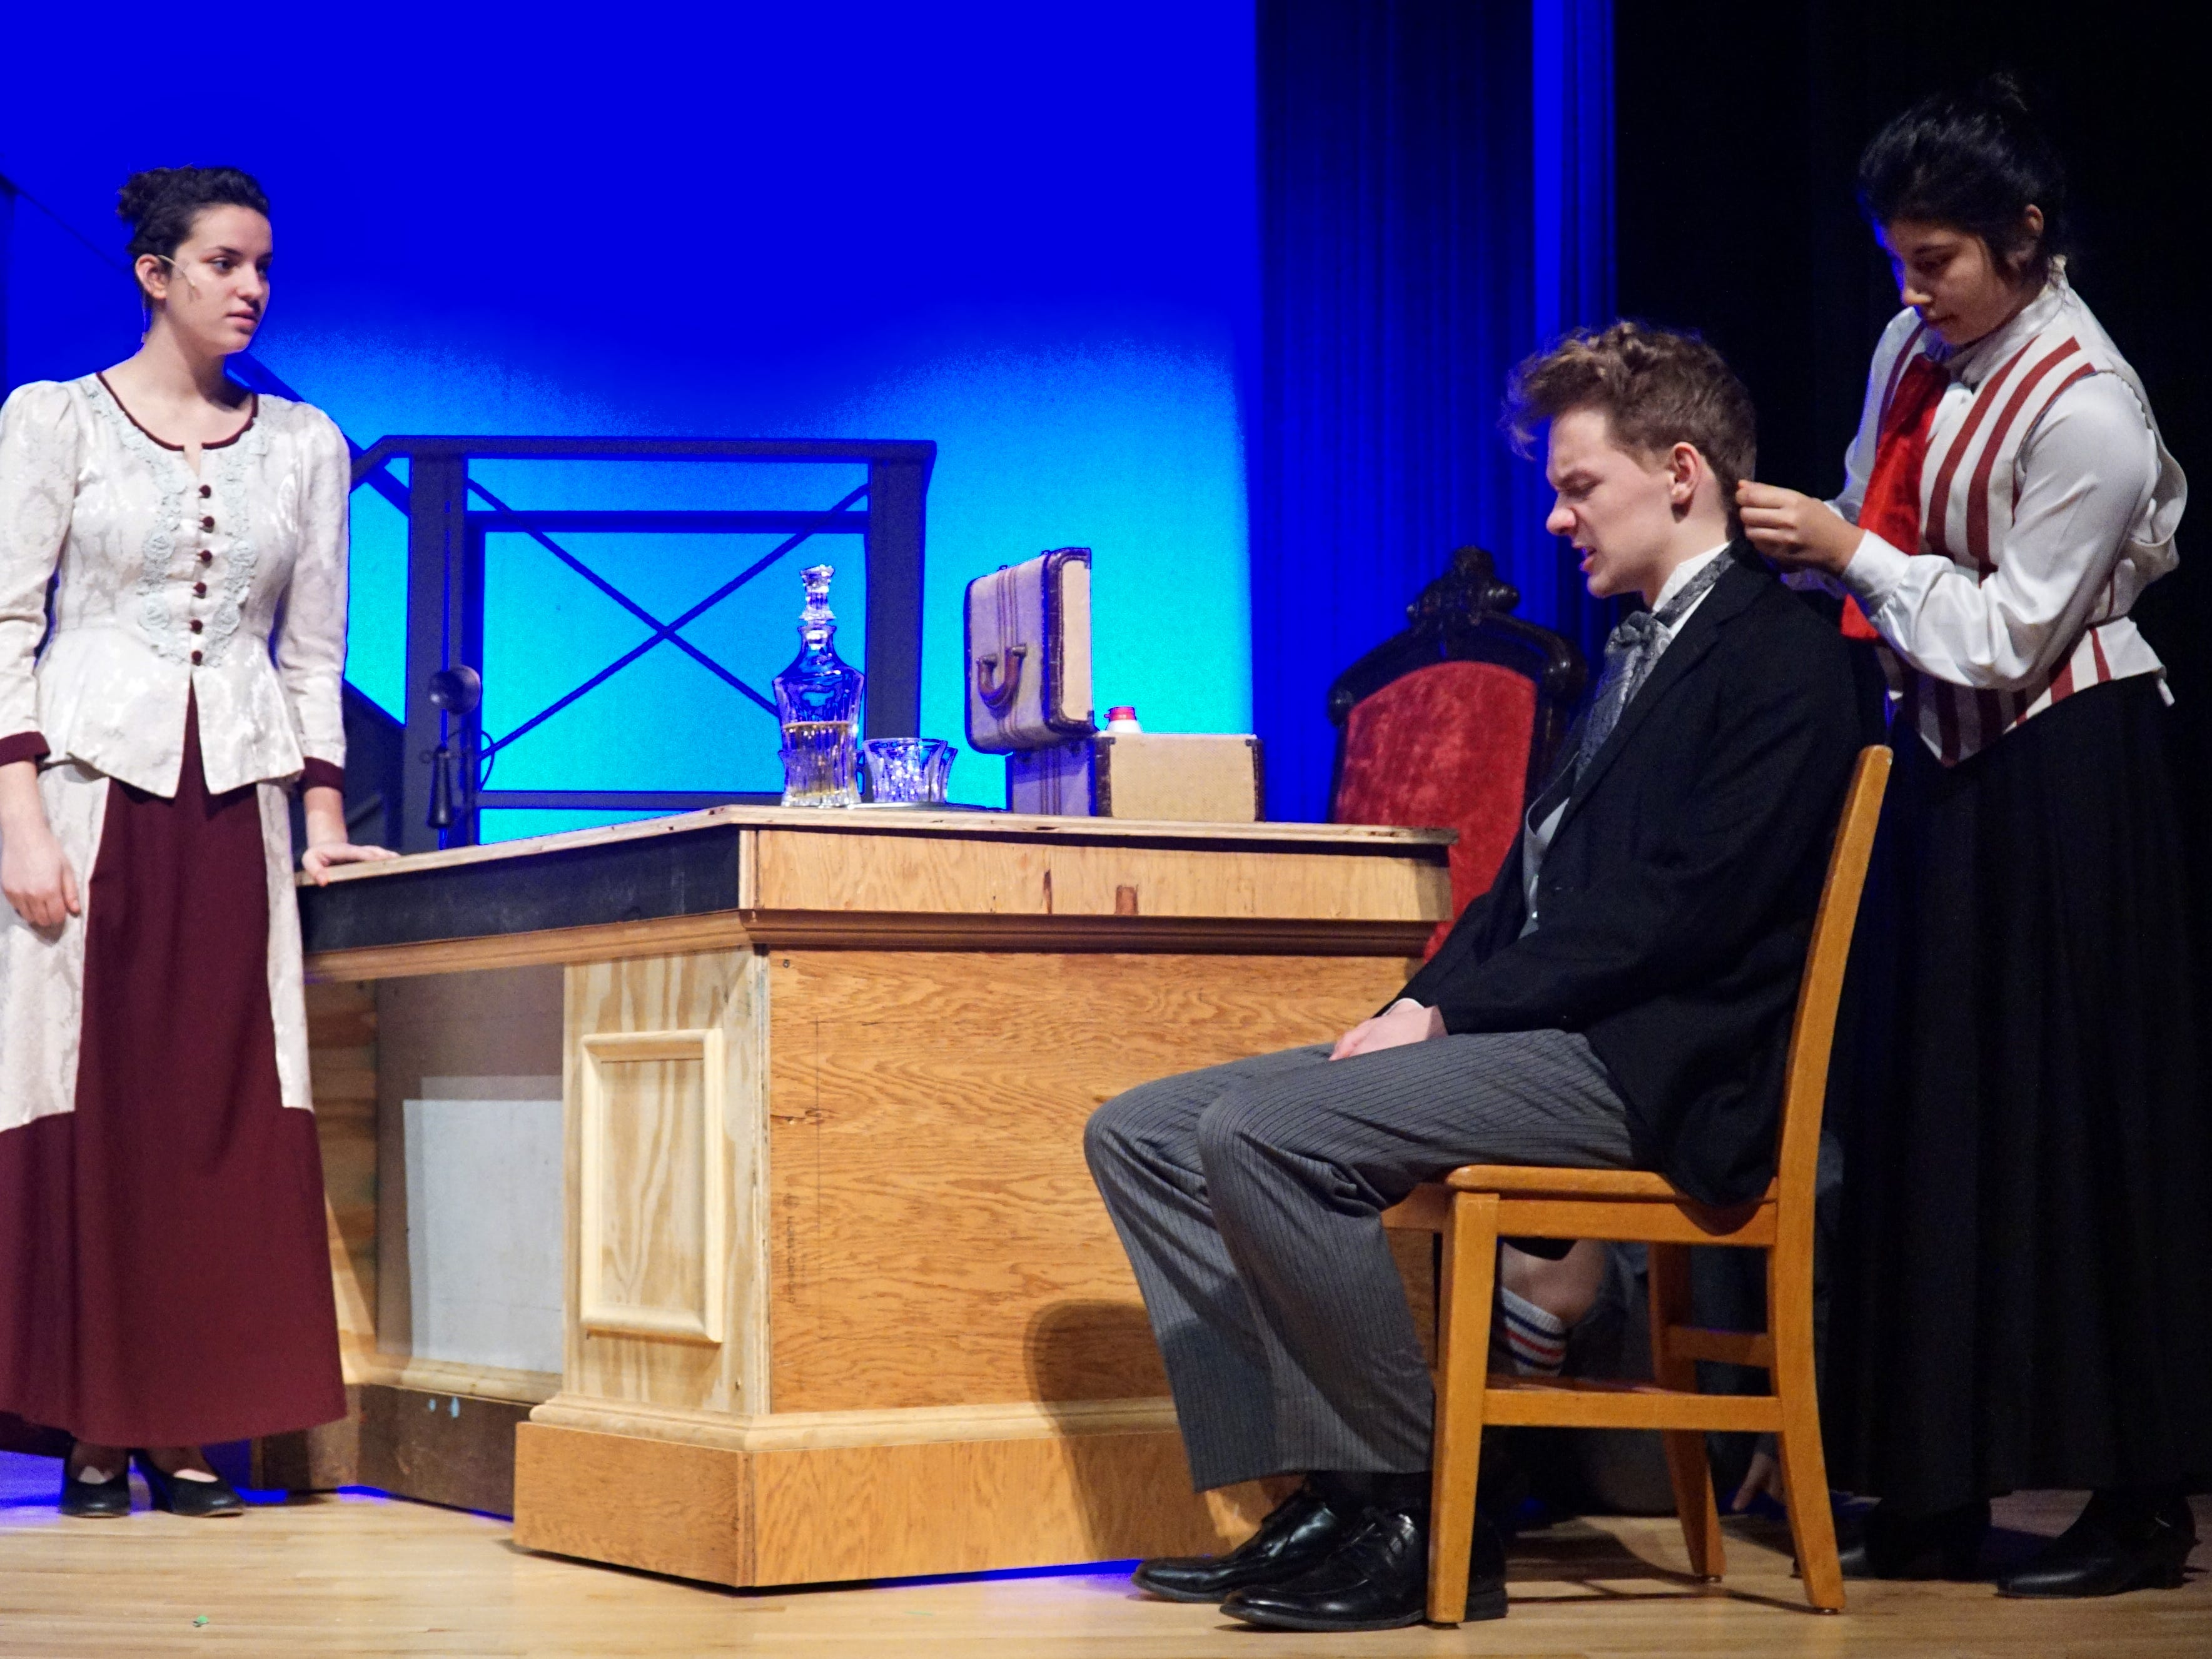 Joseph Pulitzer, right, (Isaac Cantrell) and two actresses from Mercy High perform a scene from the upcoming production of Newsies. The play is being staged at Mercy with its female students and male students from surrounding schools including Orchard Lake St. Mary's, Detroit Catholic Central, Livonia Stevenson and Plymouth Christian.